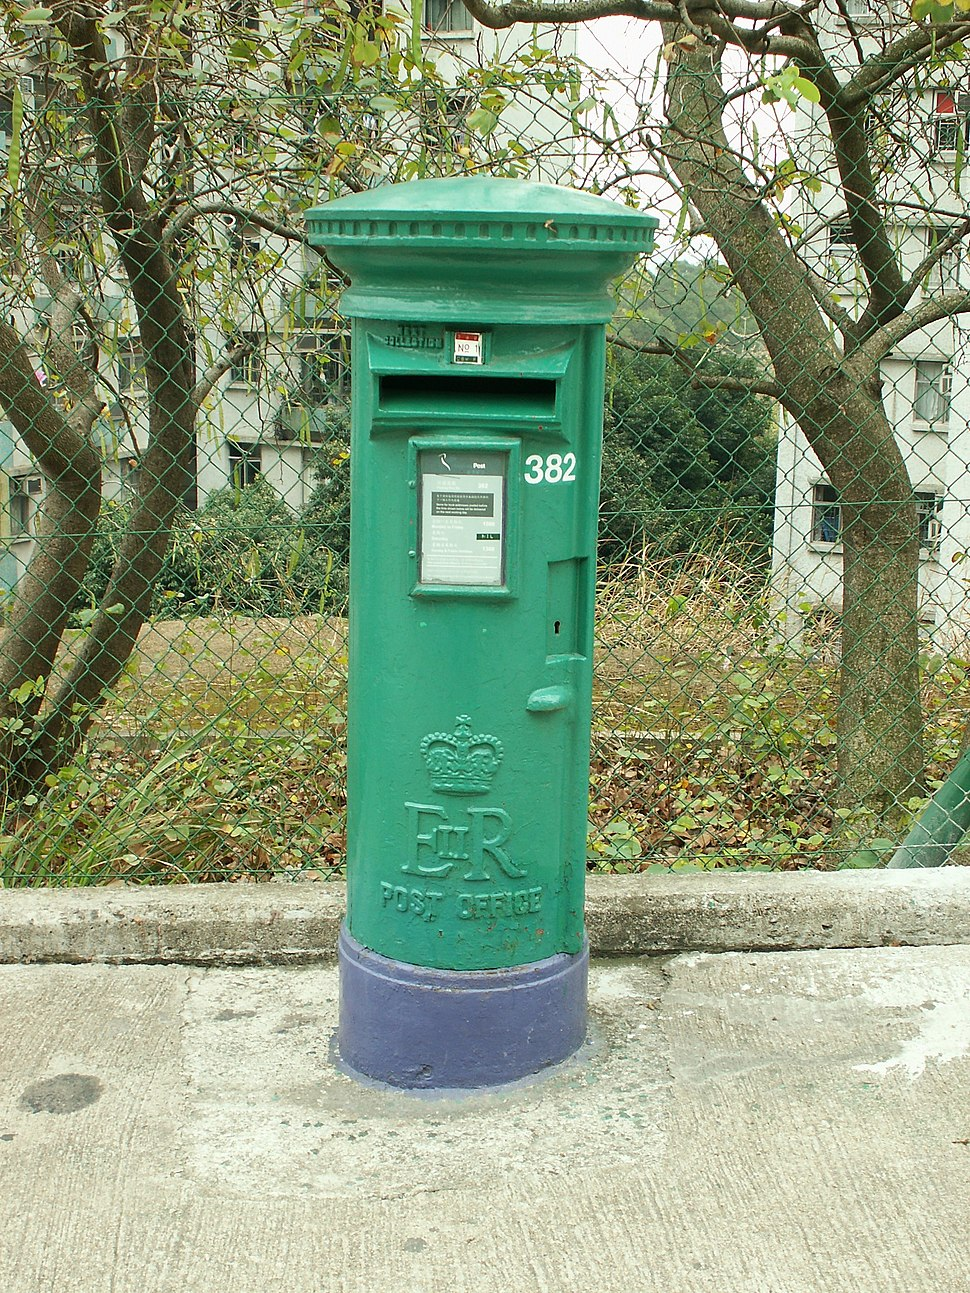 HKPostbox